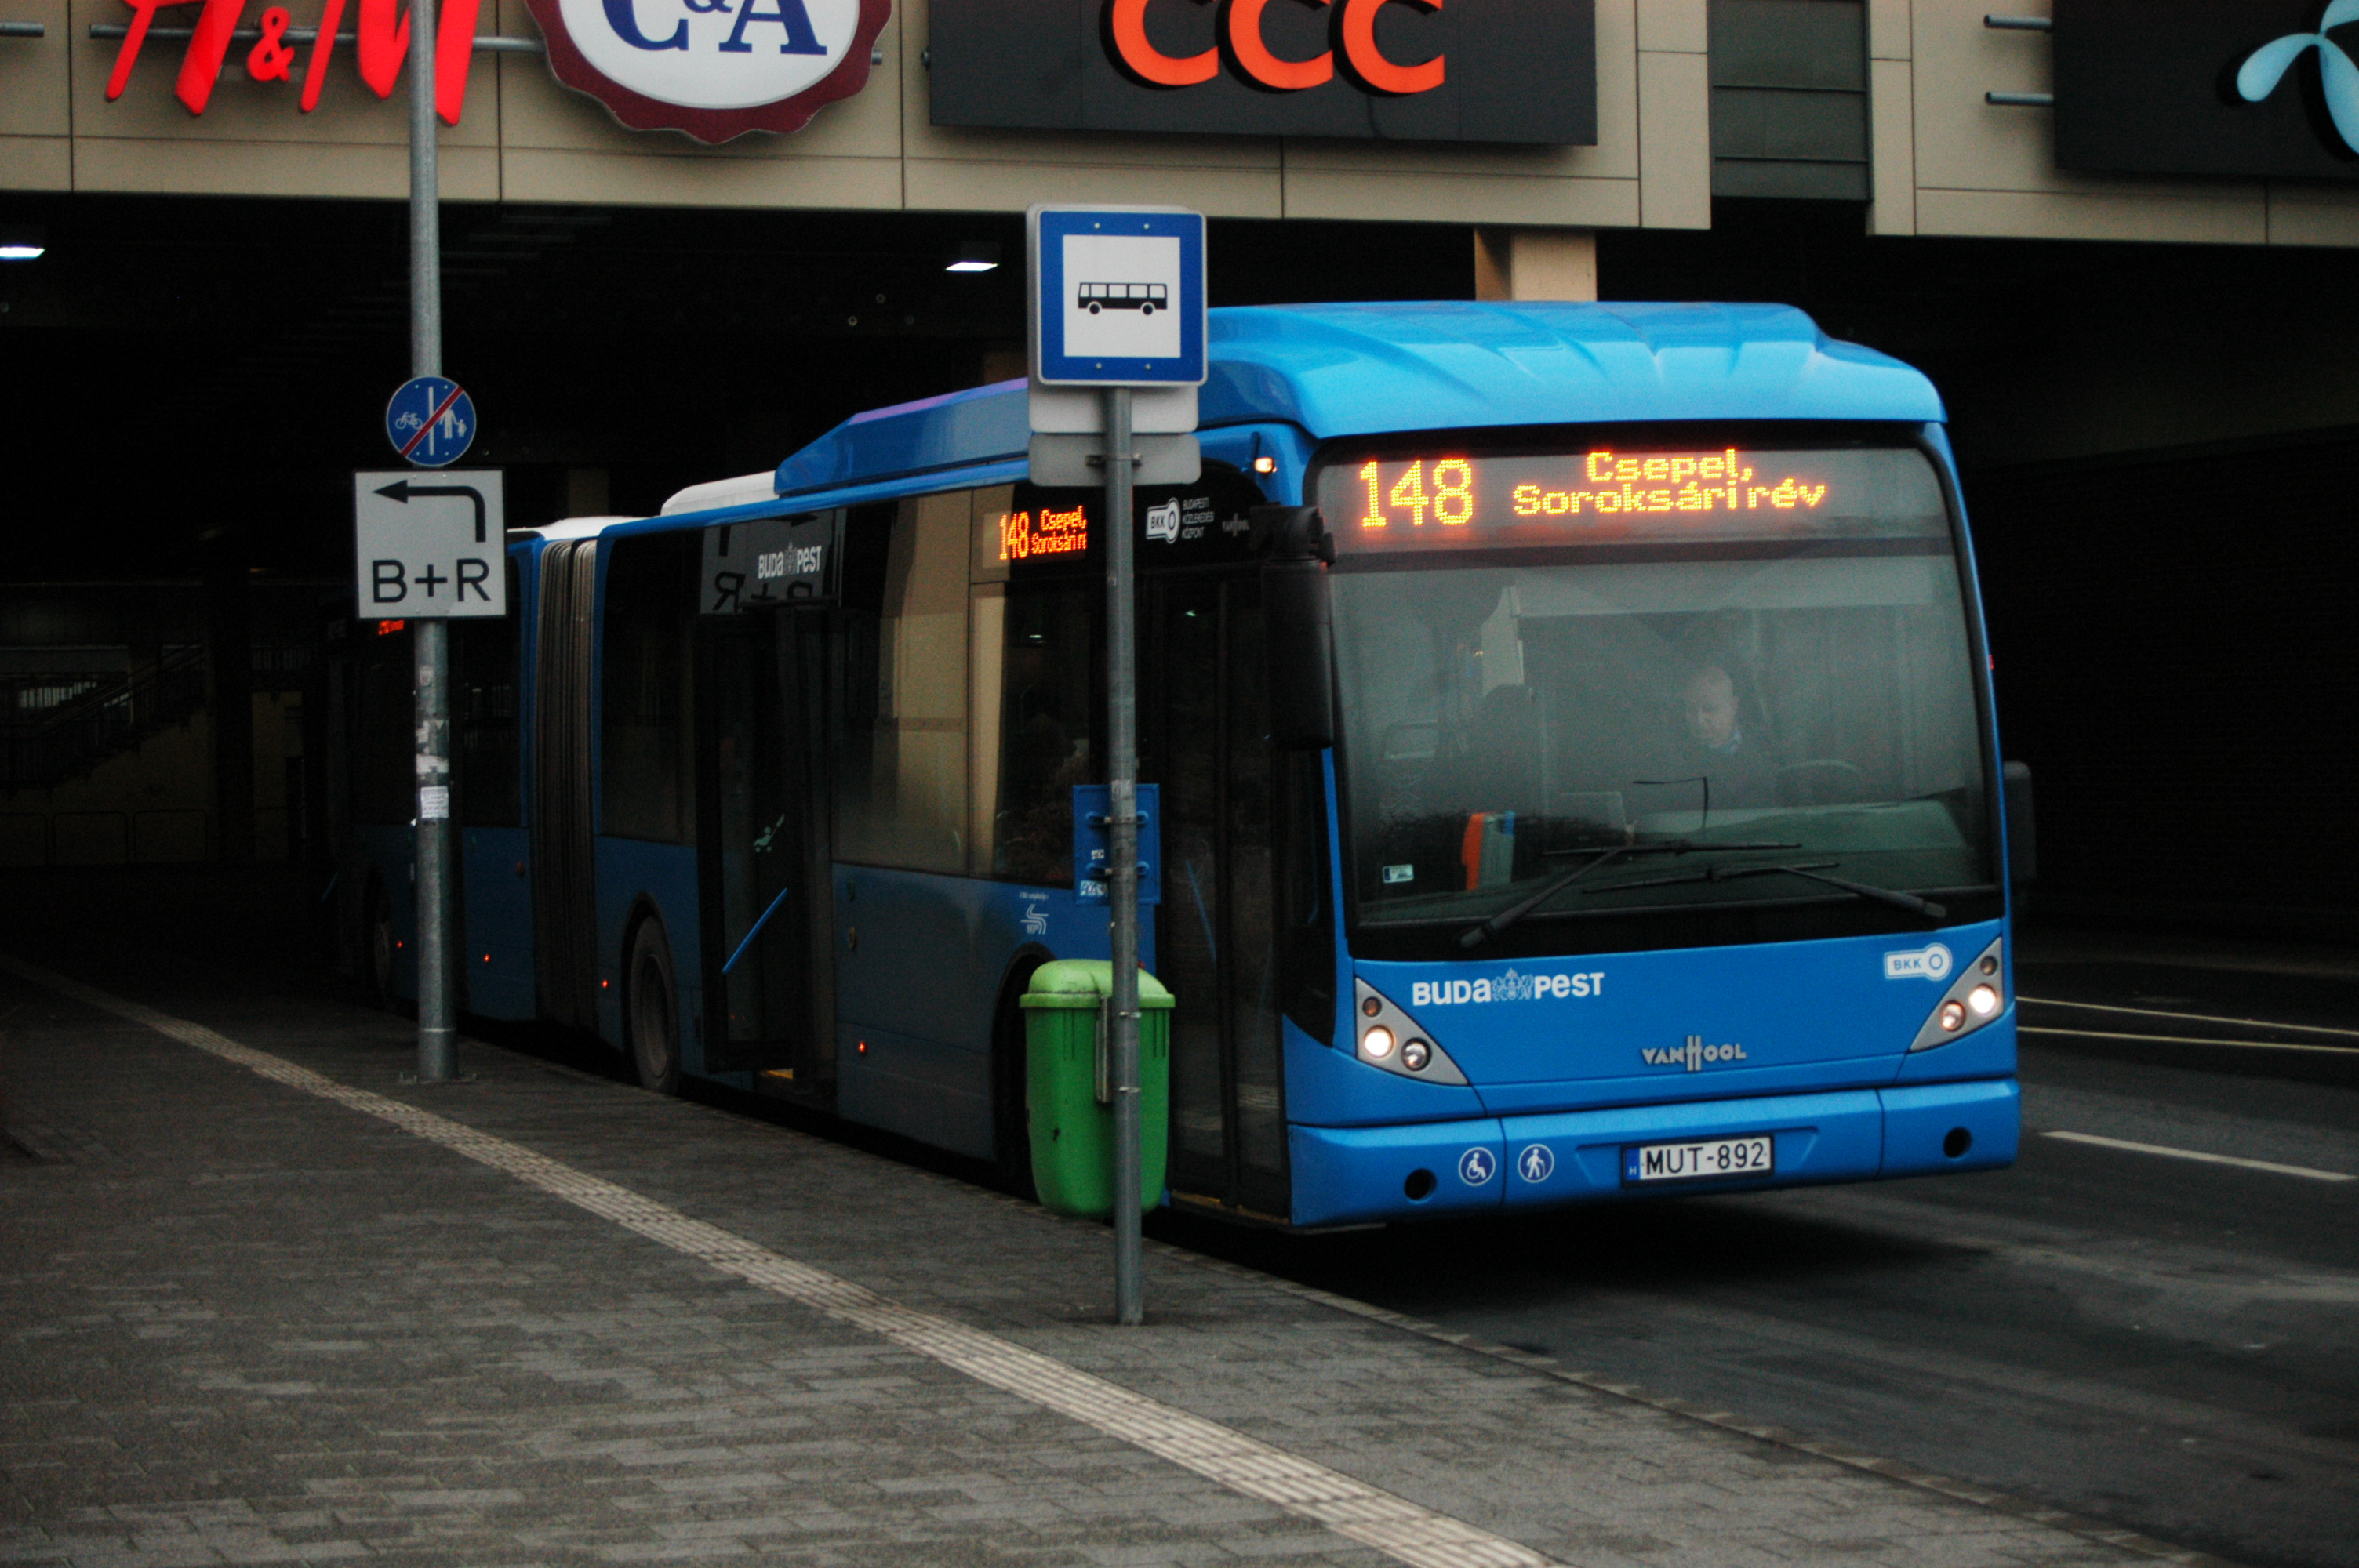 File:148-as busz (MUT-892).JPG